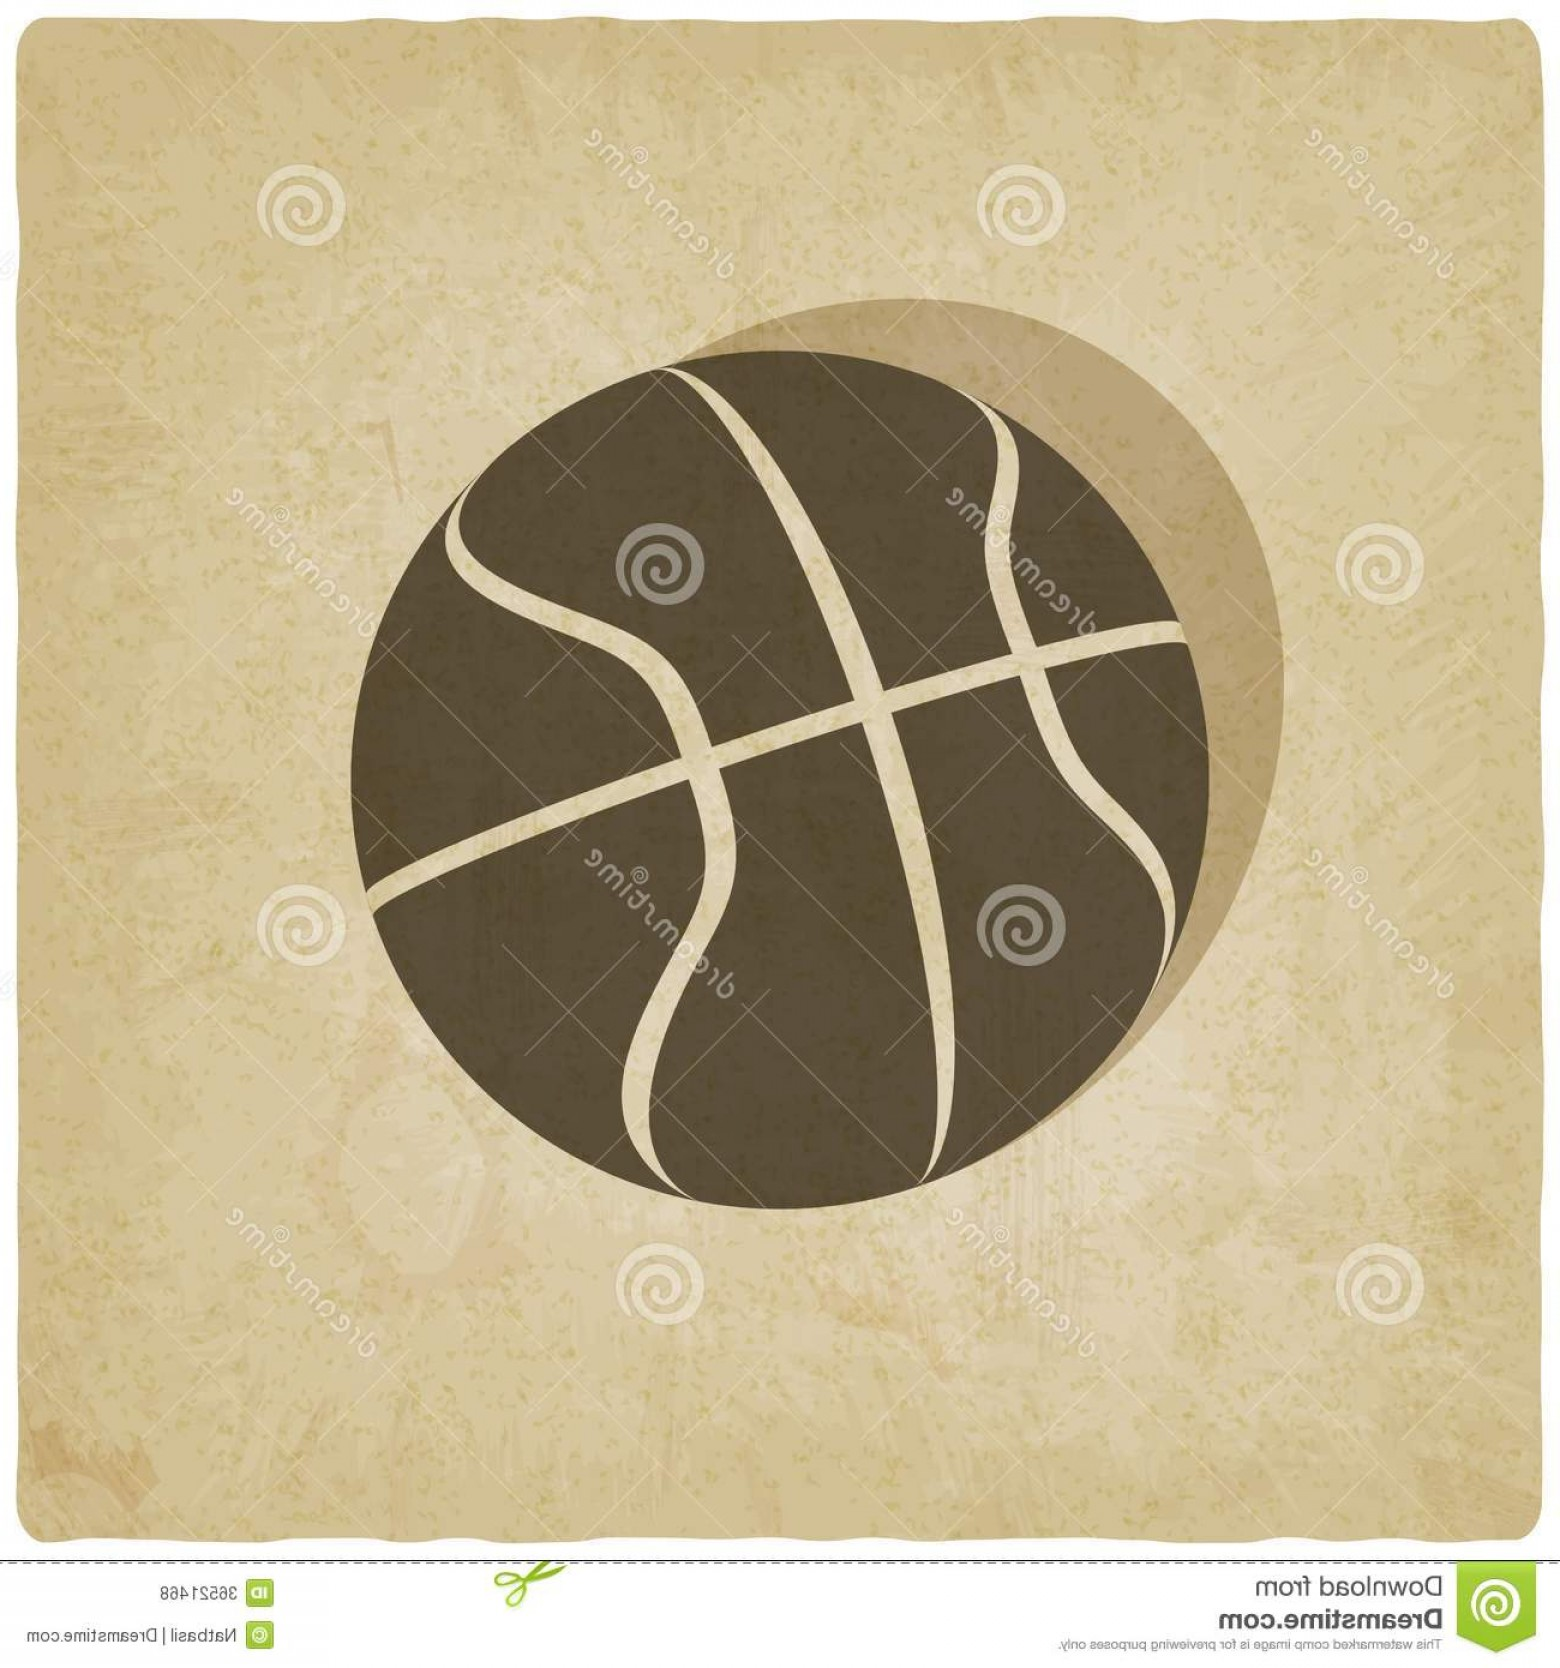 Nike Volleyball Vector Designs: Royalty Free Stock Photos Sport Basketball Logo Old Background Vector Illustration Image